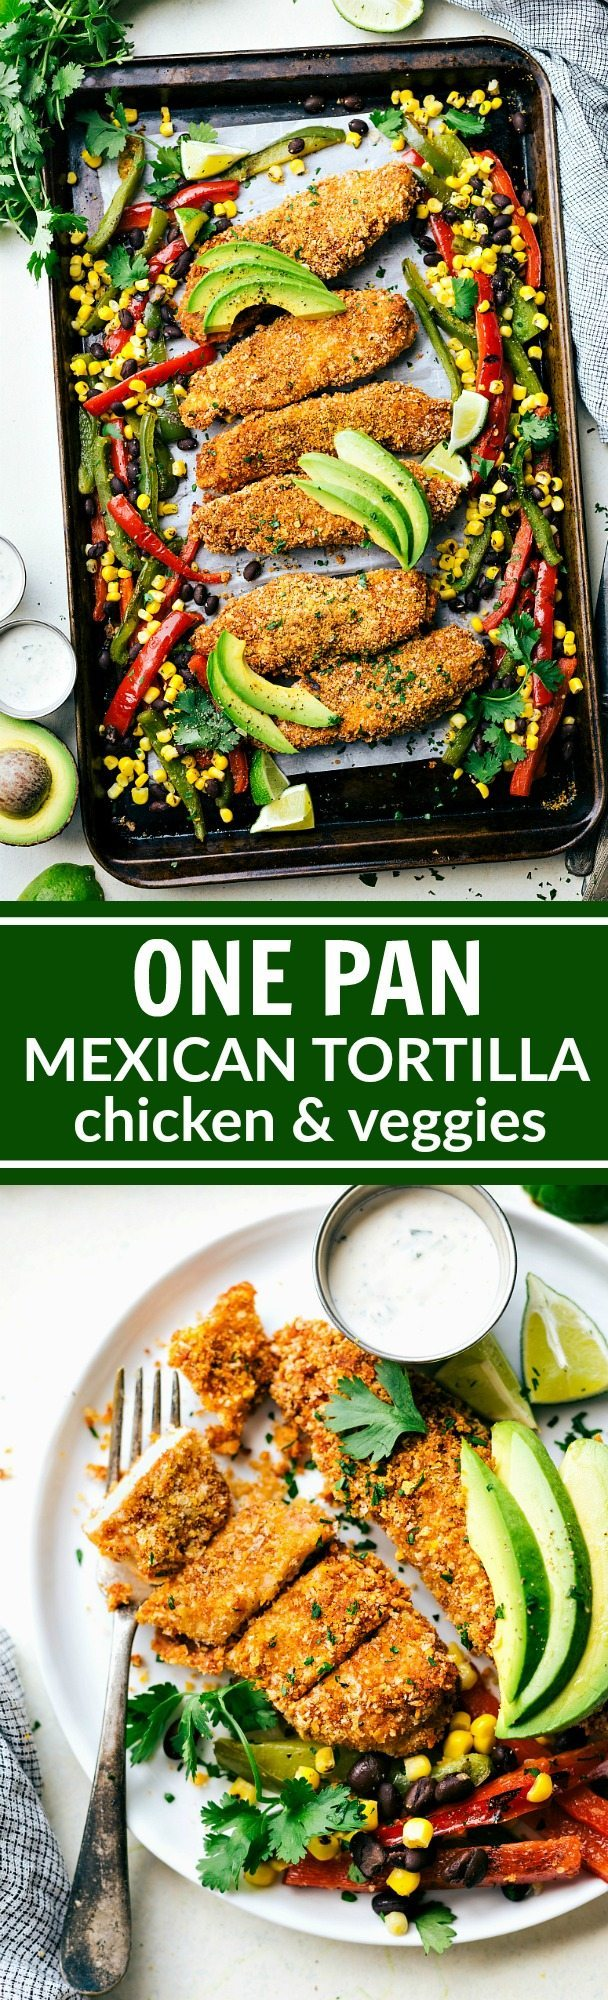 ONE PAN Mexican Tortilla Chicken and Veggies! Tortilla crusted chicken baked on one pan with peppers, corn, and black beans! A delicious, hearty, and healthy meal the whole family will love! Recipe via chelseasmessyapron.com